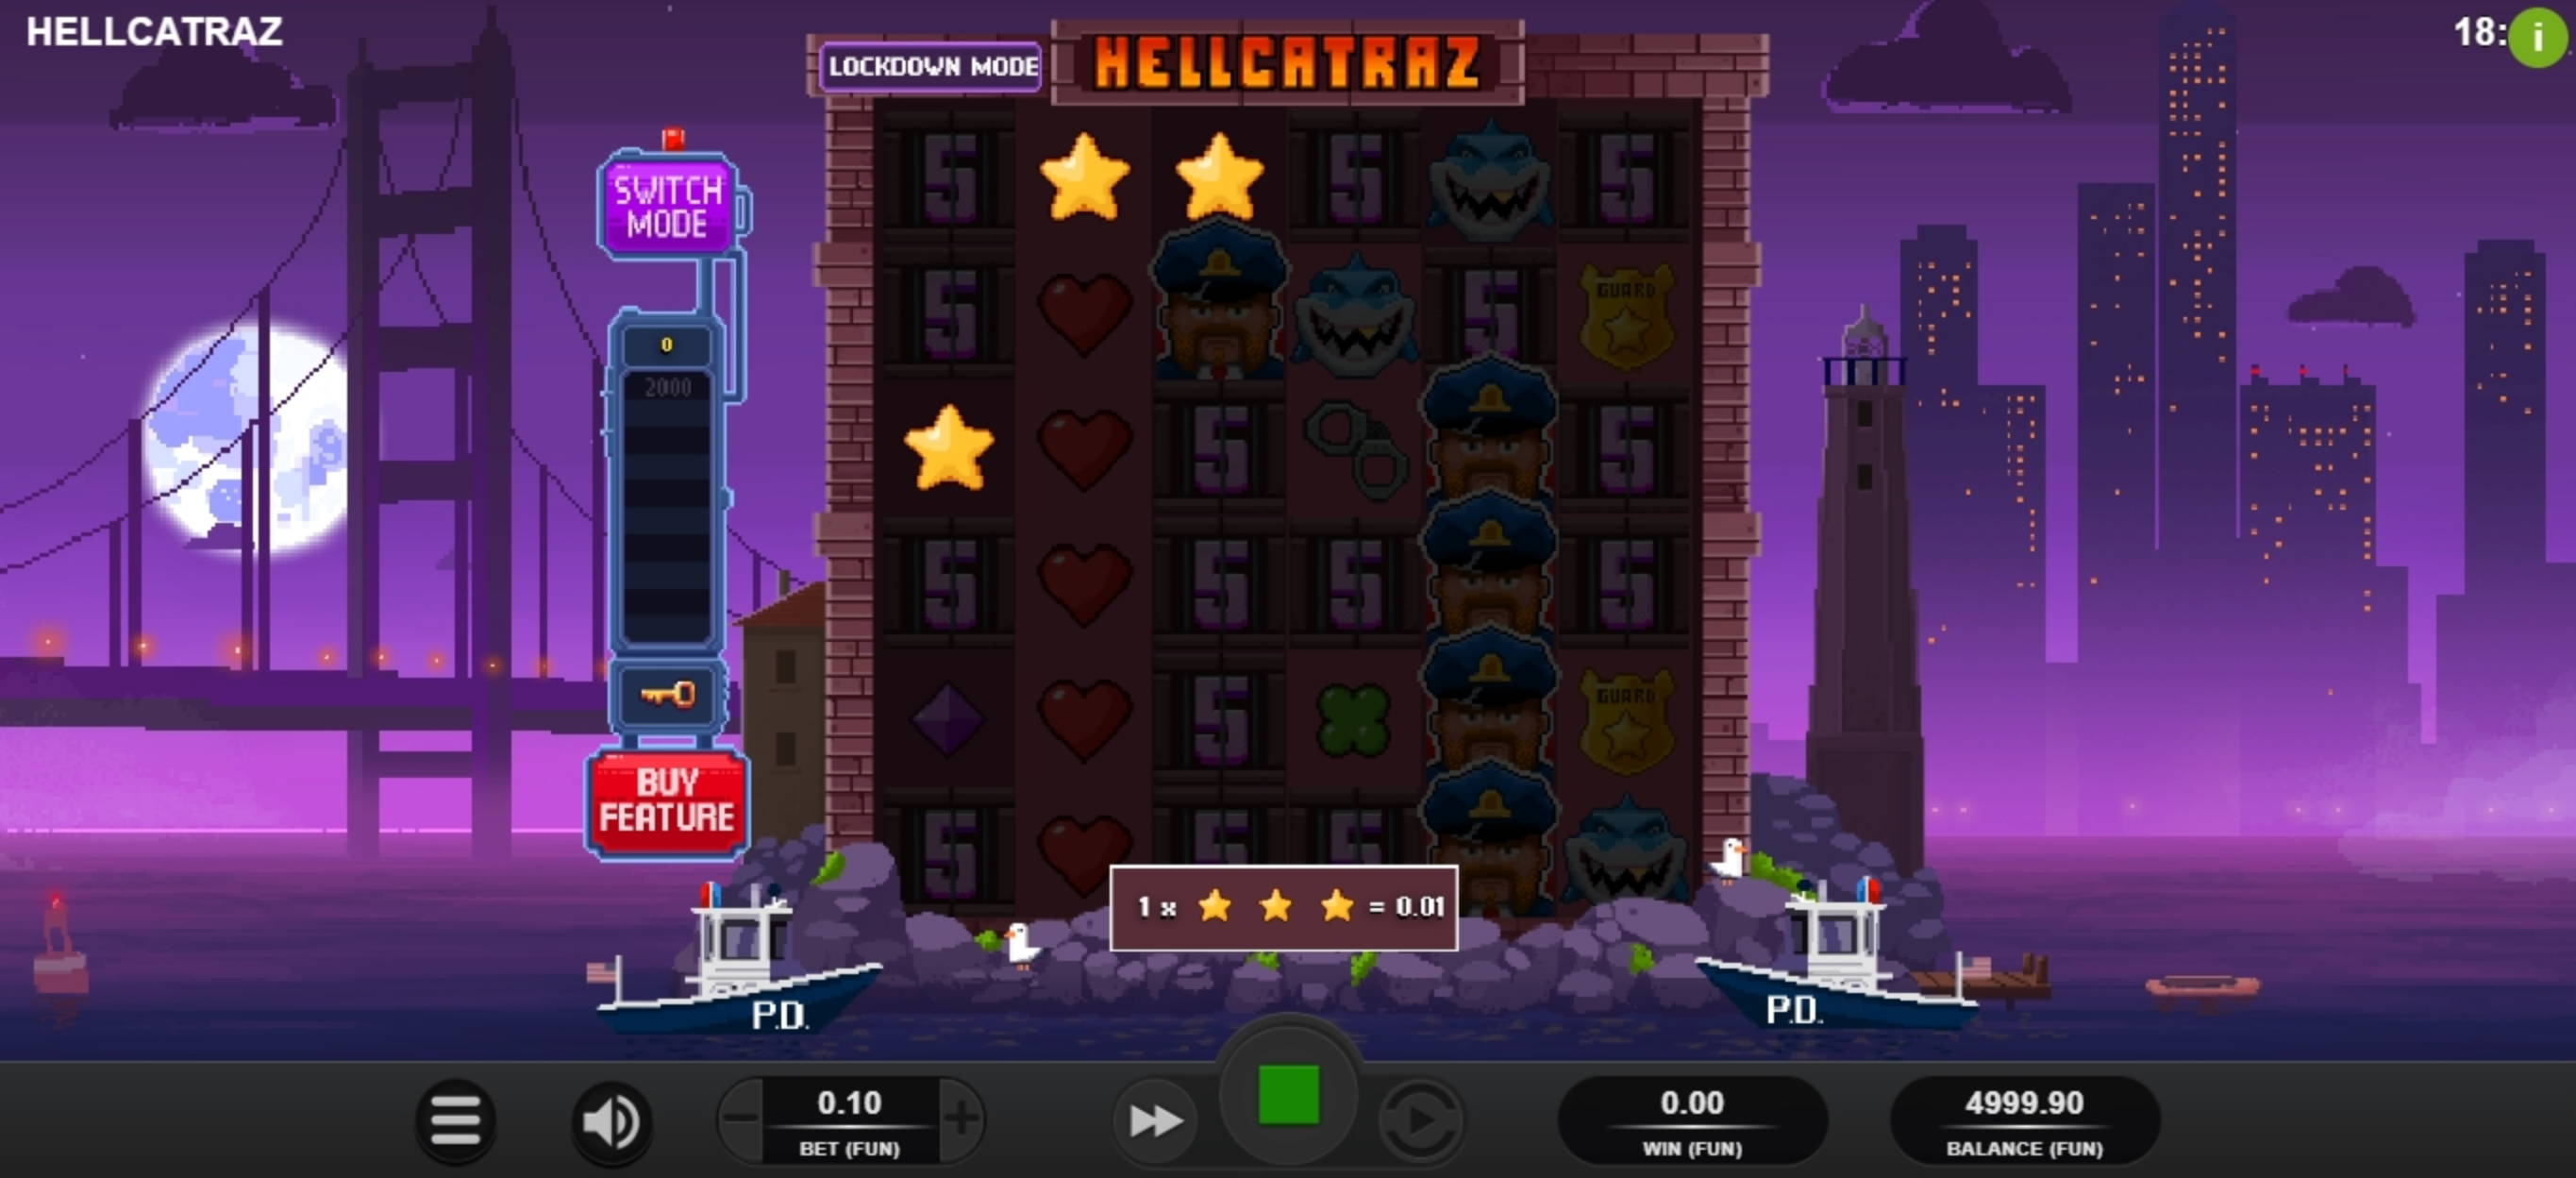 Win Money in Hellcatraz Free Slot Game by Relax Gaming